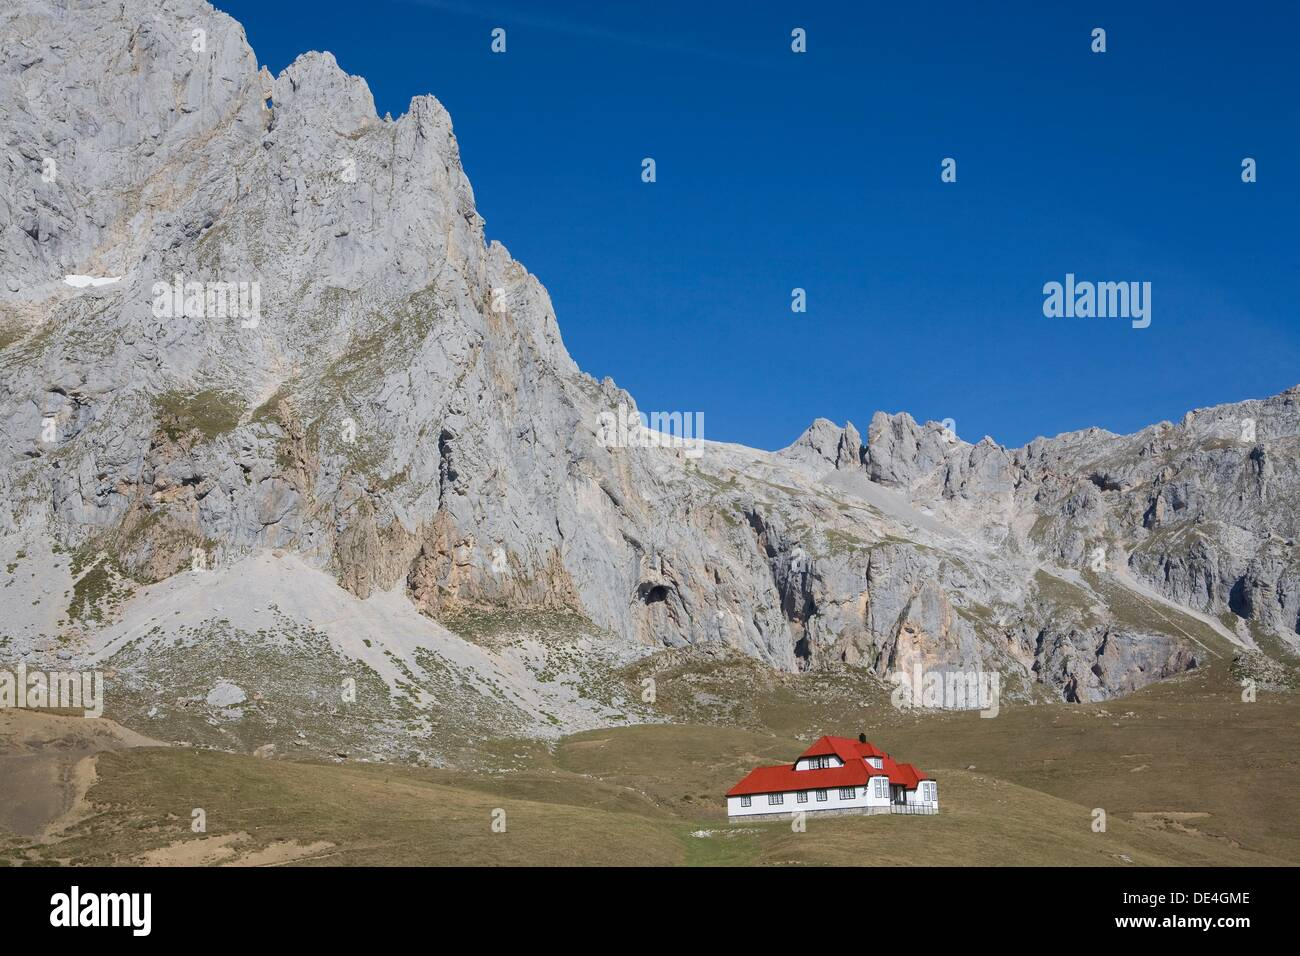 Chalet Real in the Urrieles massif of the Picos de Europa National Park, Cantabria, Spain - Stock Image